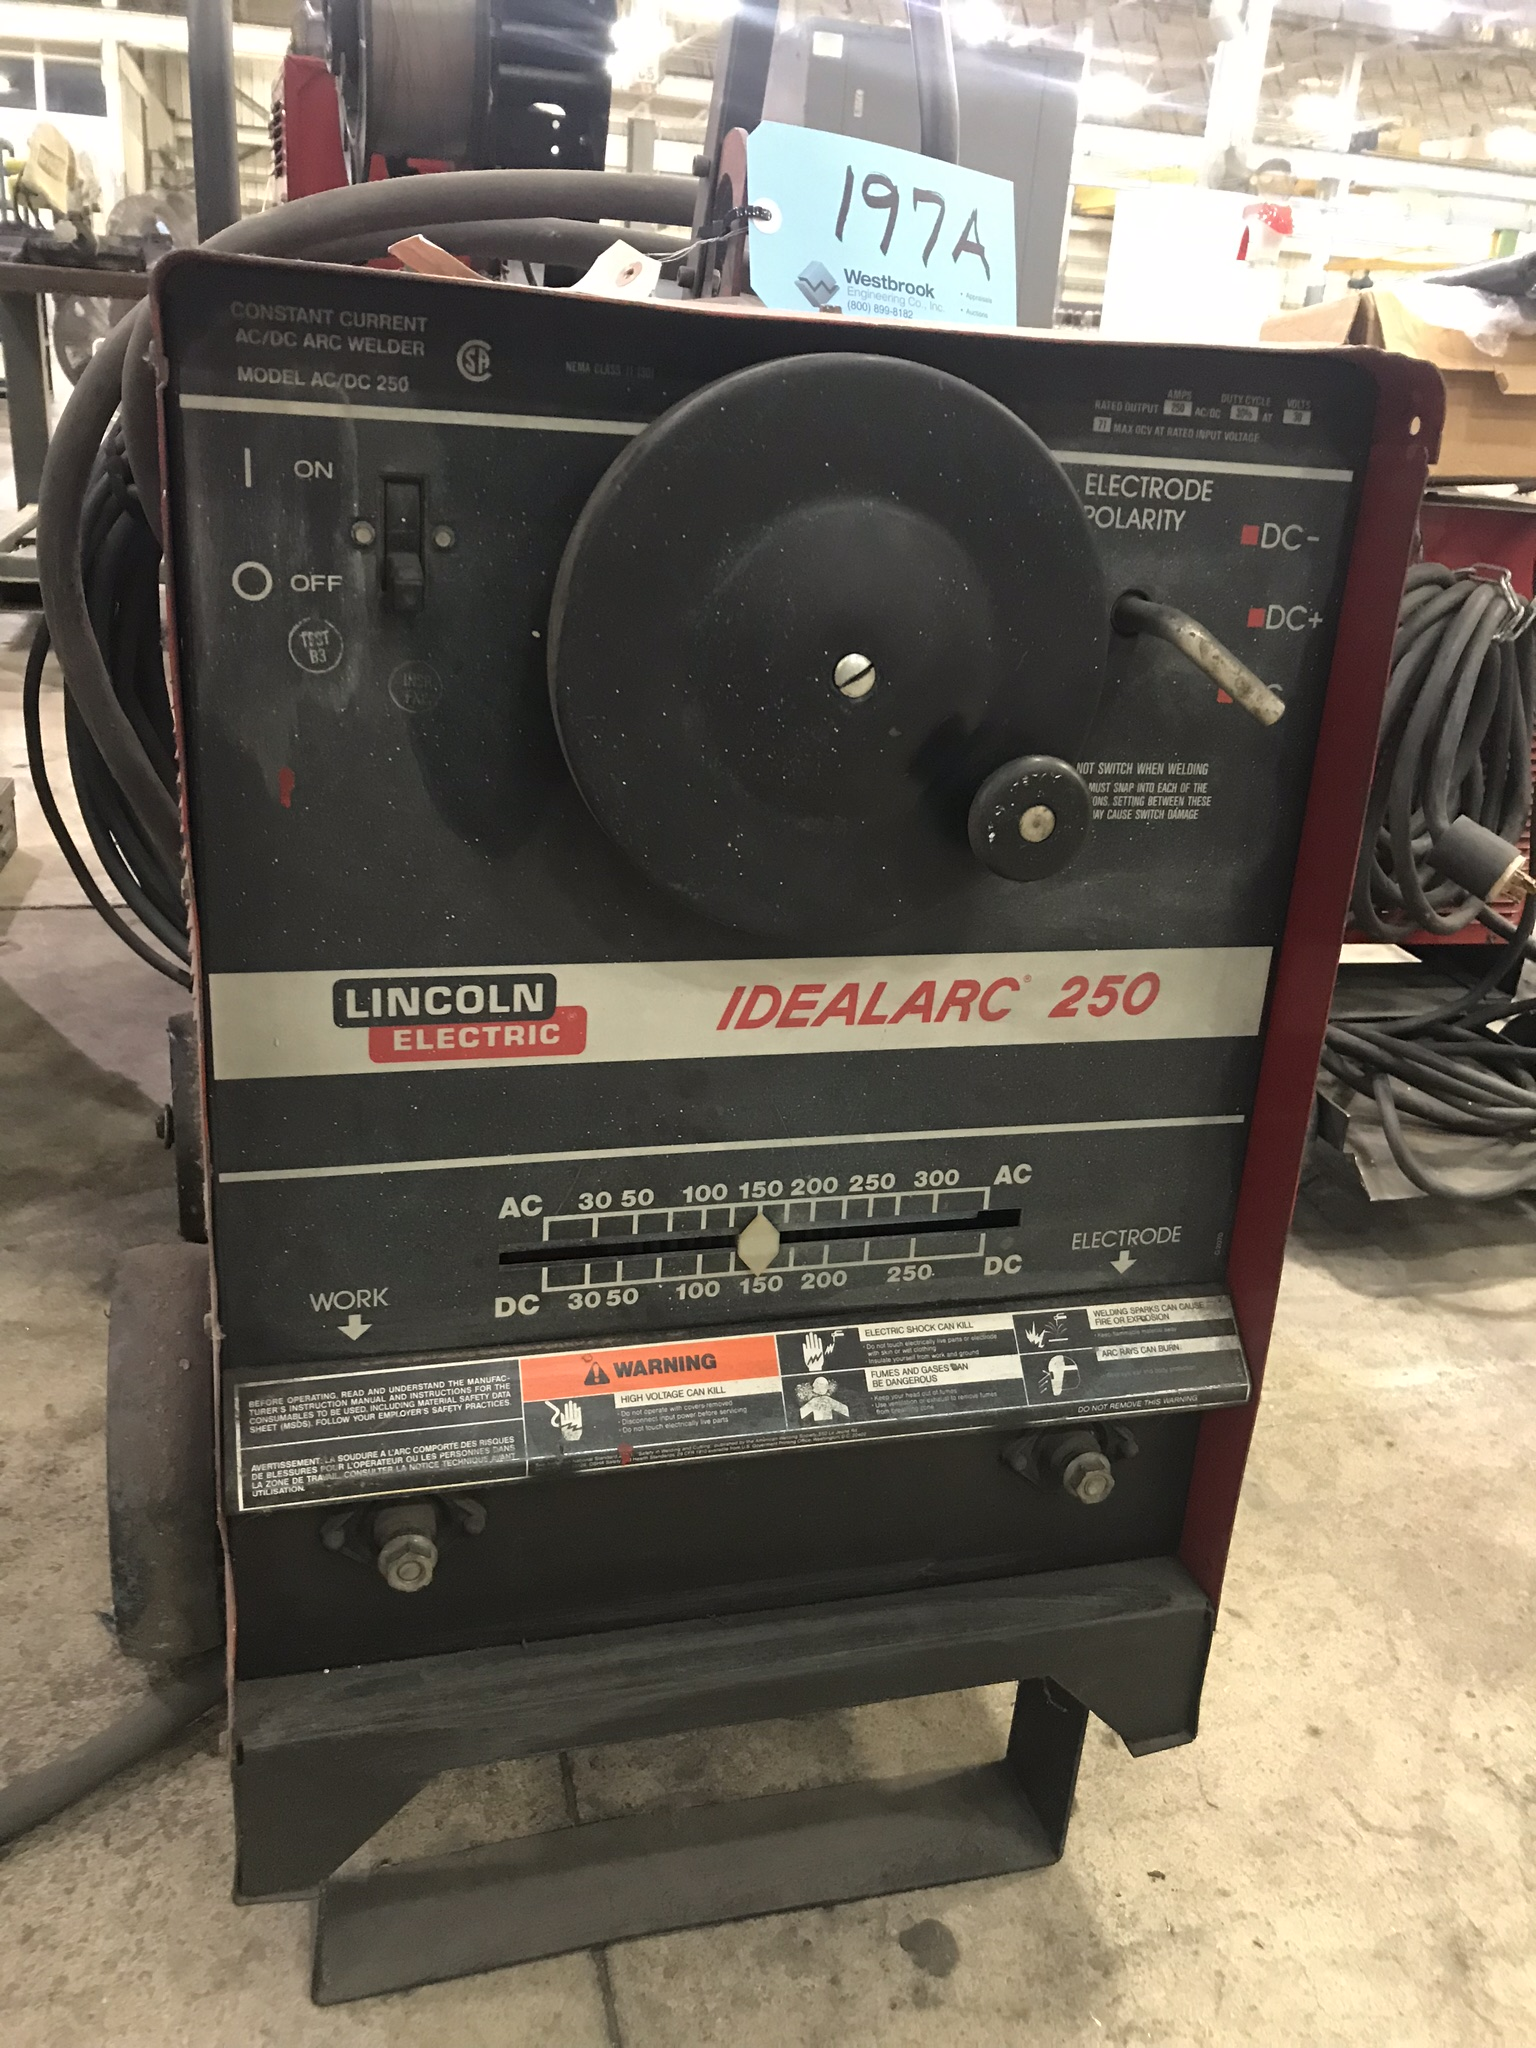 Lincoln Ideal Arc 250, 250 Amp Capacity, CC, AC/DC, Arc Welder